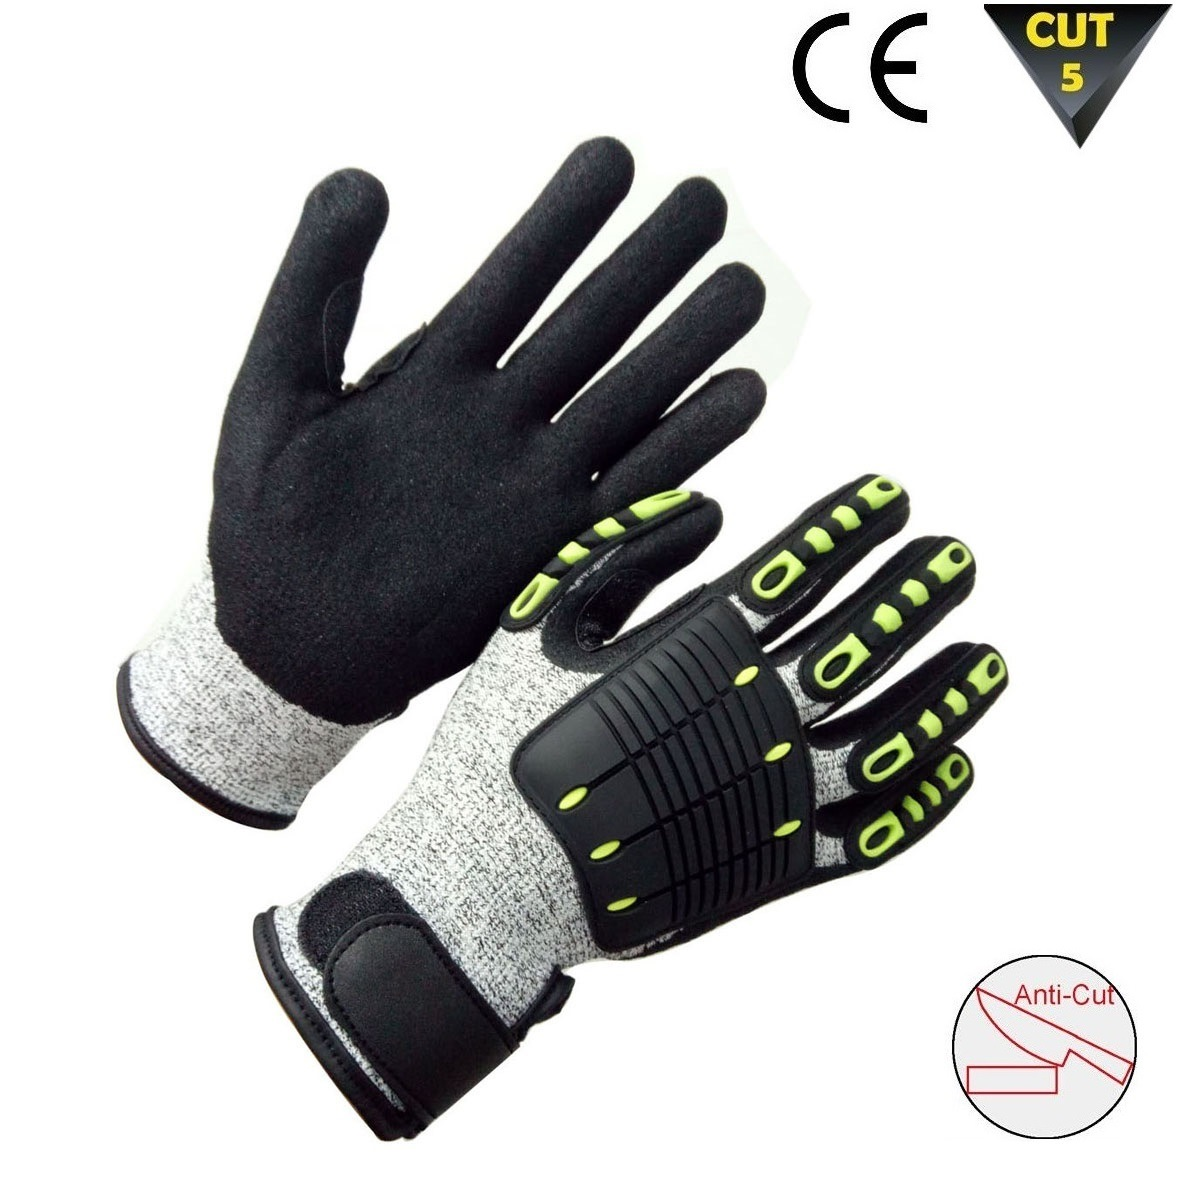 Security & Protection Trustful Safety Gloves Anti-vibration Impact Protection Latex Labor Protection Work Gloves Wear Resistance Gloves Hot High Quality Materials Workplace Safety Supplies